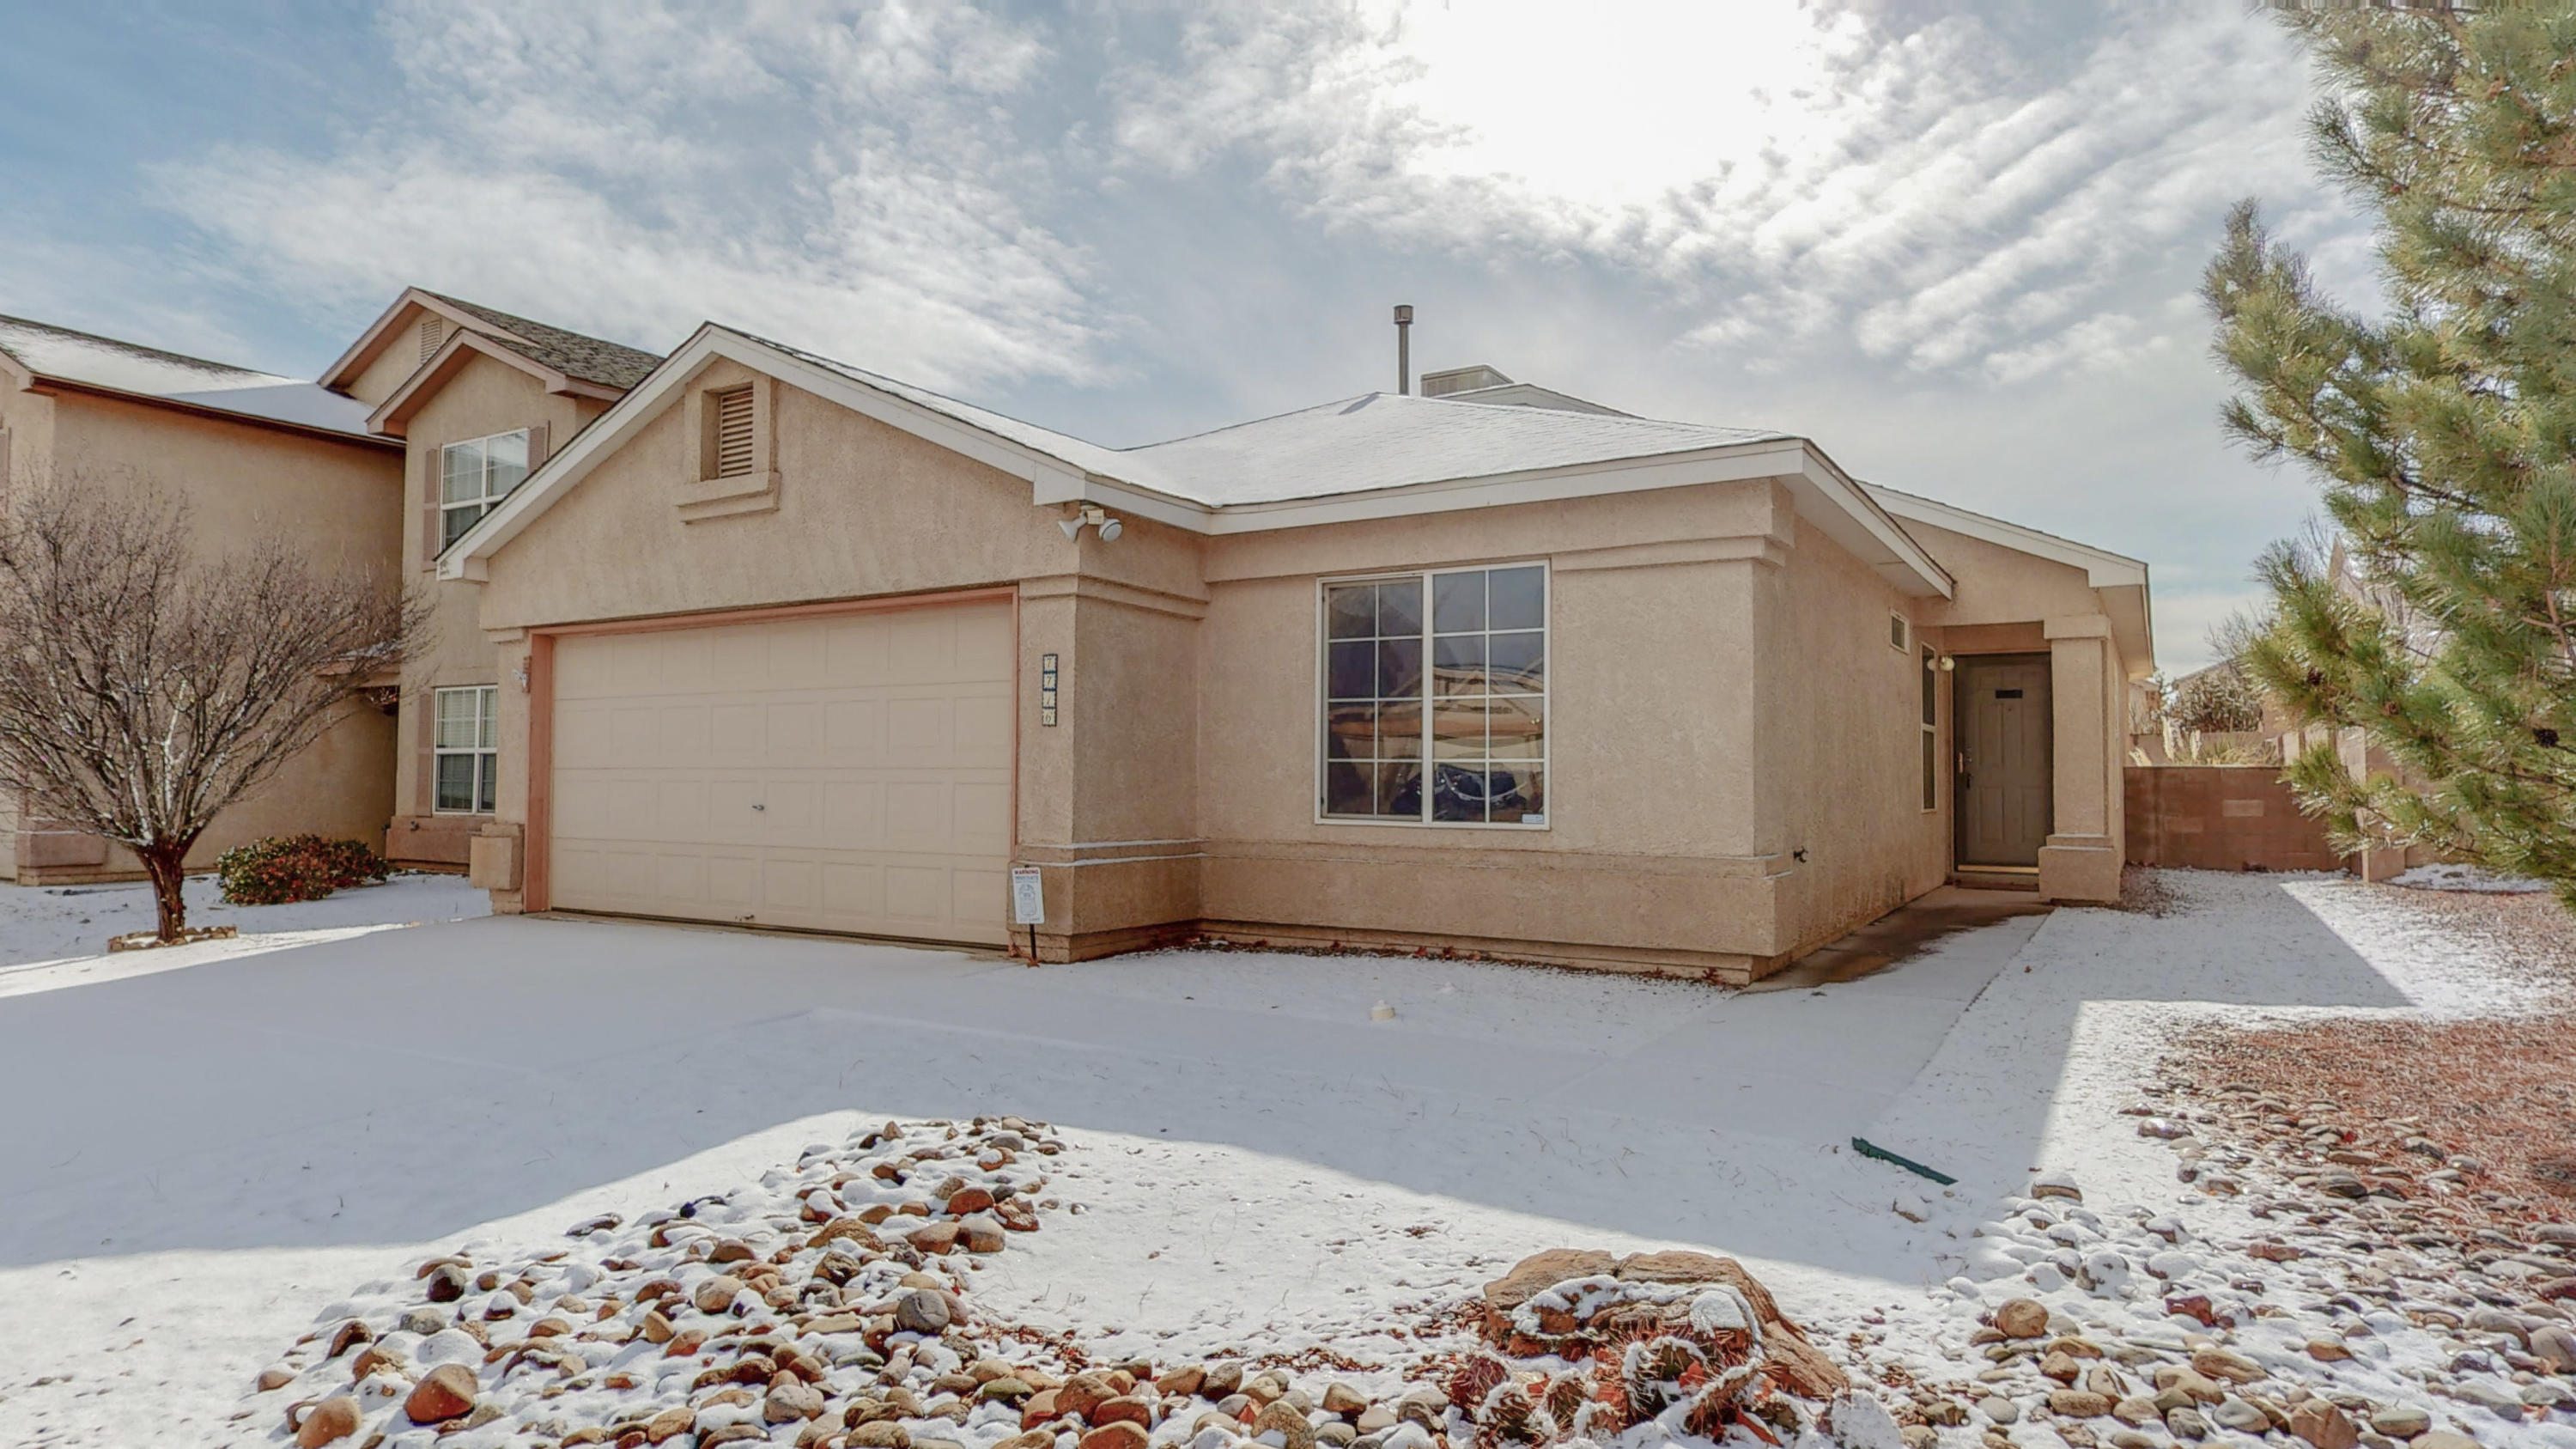 Open House Saturday 1/30 from 1- 3 pm!  **Multiple Offers Received! Located in desirable Ventana Ranch! Soaring Ceilings and lots of Natural light welcome you as you enter your new home! The open concept floor plan is perfect for making memories and gathering with friends and Family! Cozy up the the gas log fireplace while the snow melts away outside. Enjoy cooking your favorite meals in the open kitchen while you gaze out the Bay windows of the breakfast nook.  Updates include Fresh paint,, new flooring and new blinds. Relax after a long day on the spacious Back patio and enjoy the low maintenance Landscaping. Take a virtual Walkthrough tour today or schedule a private showing starting Thursday ! Hurry, this on won't last long!!! All offers will be reviewed on Sunday 1/31 at 6 pm.